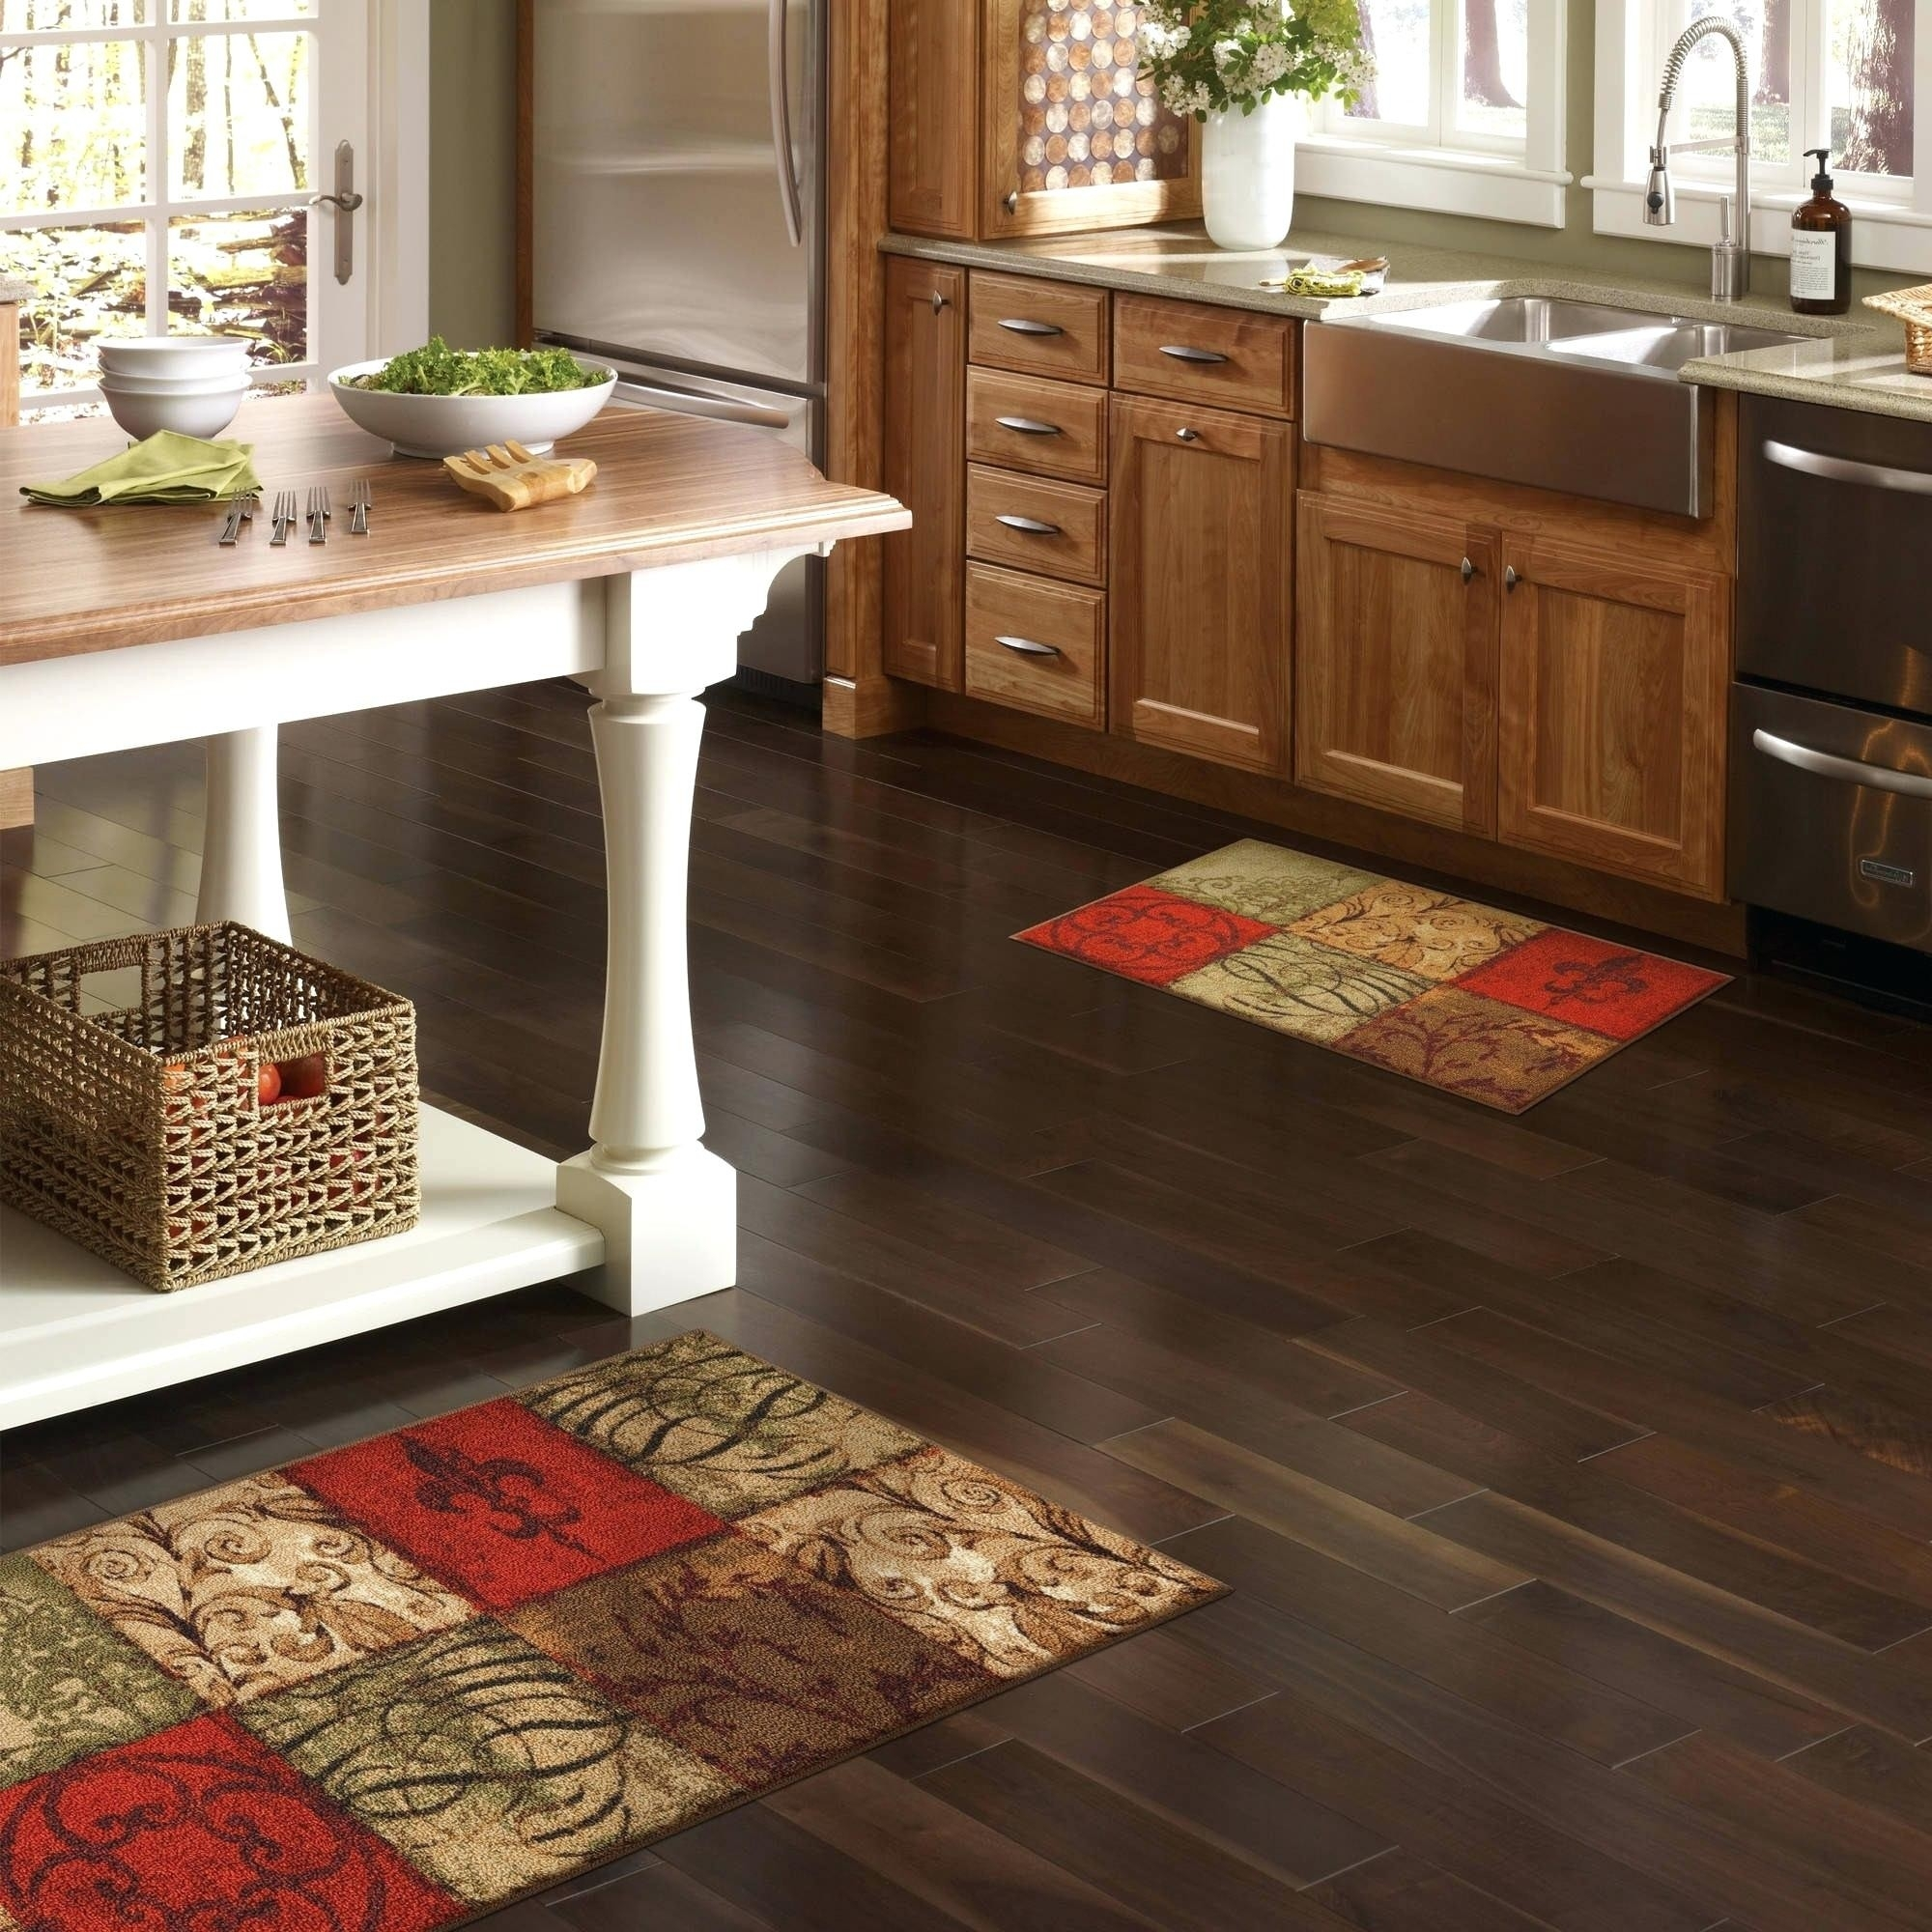 Kohls Kitchen Rugs Design Ideas